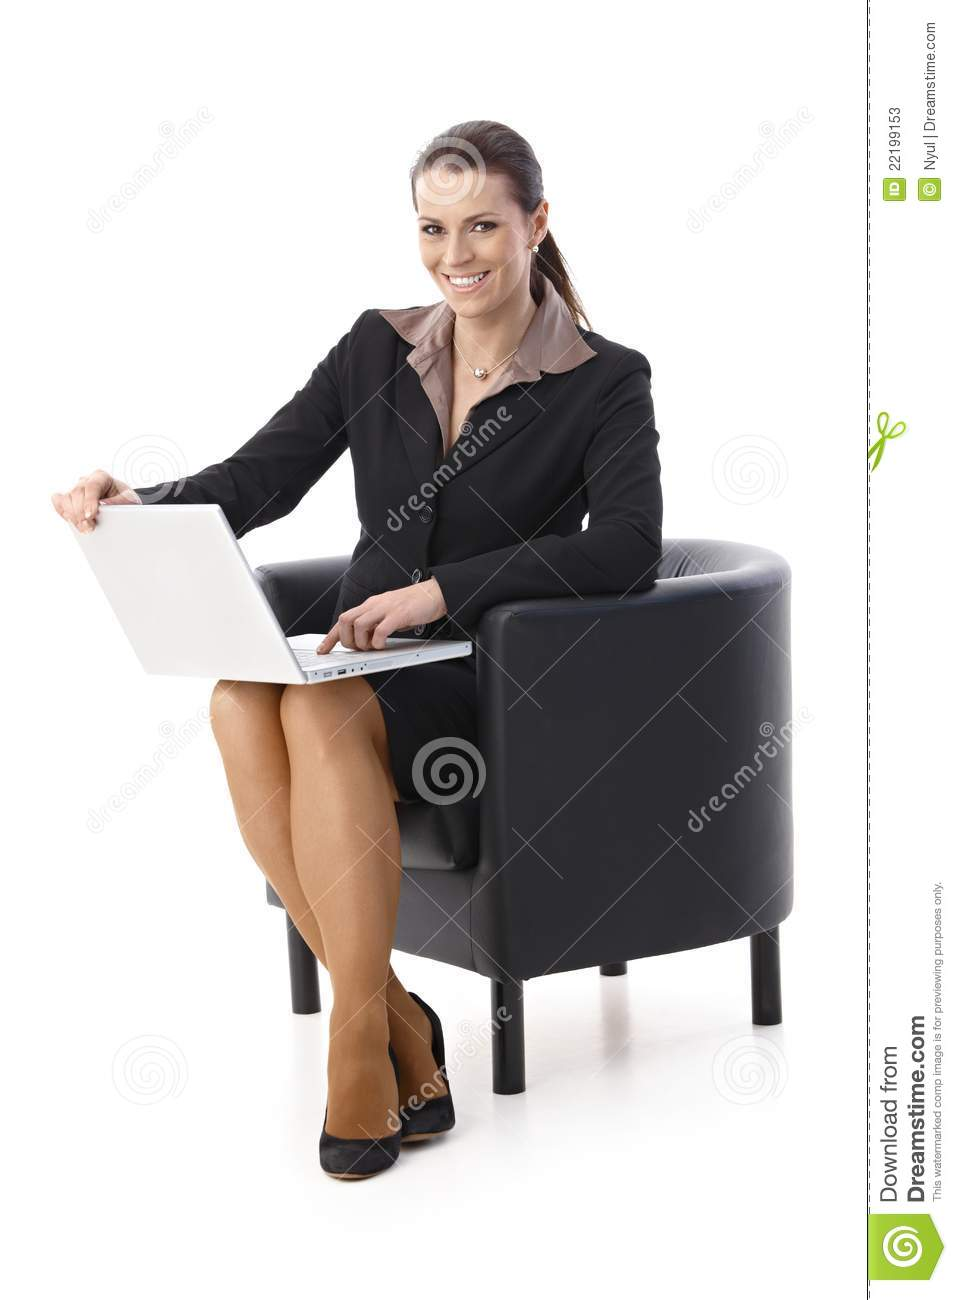 Laughing Businesswoman With Laptop Stock Photos - Image ...